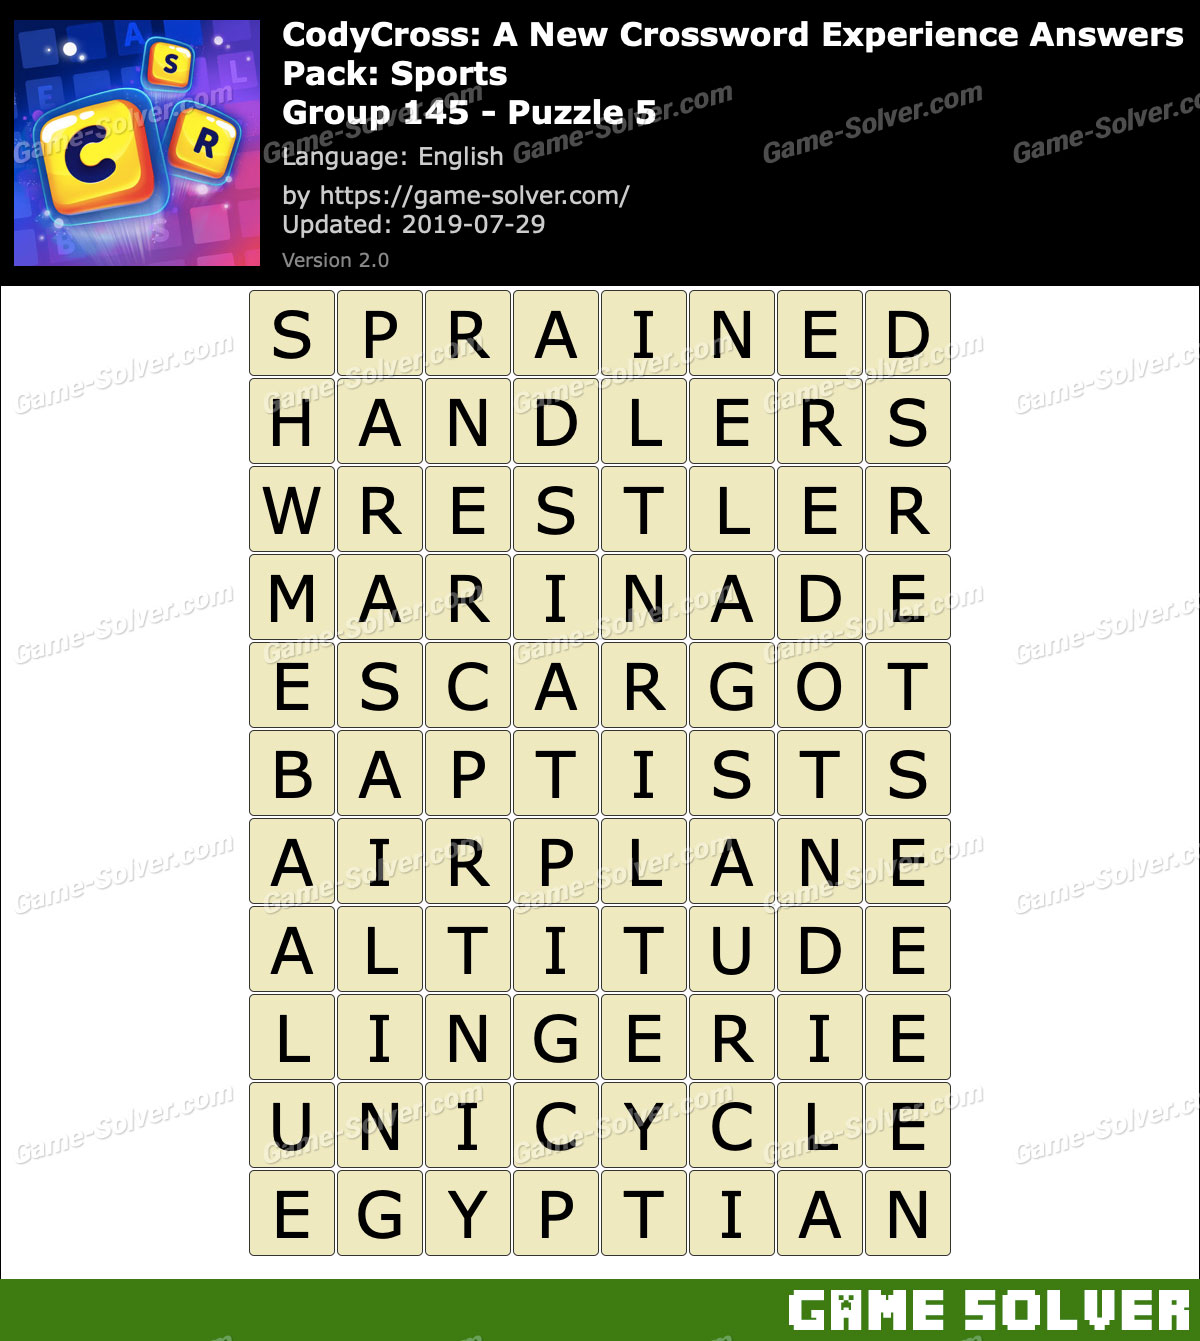 CodyCross Sports Group 145-Puzzle 5 Answers